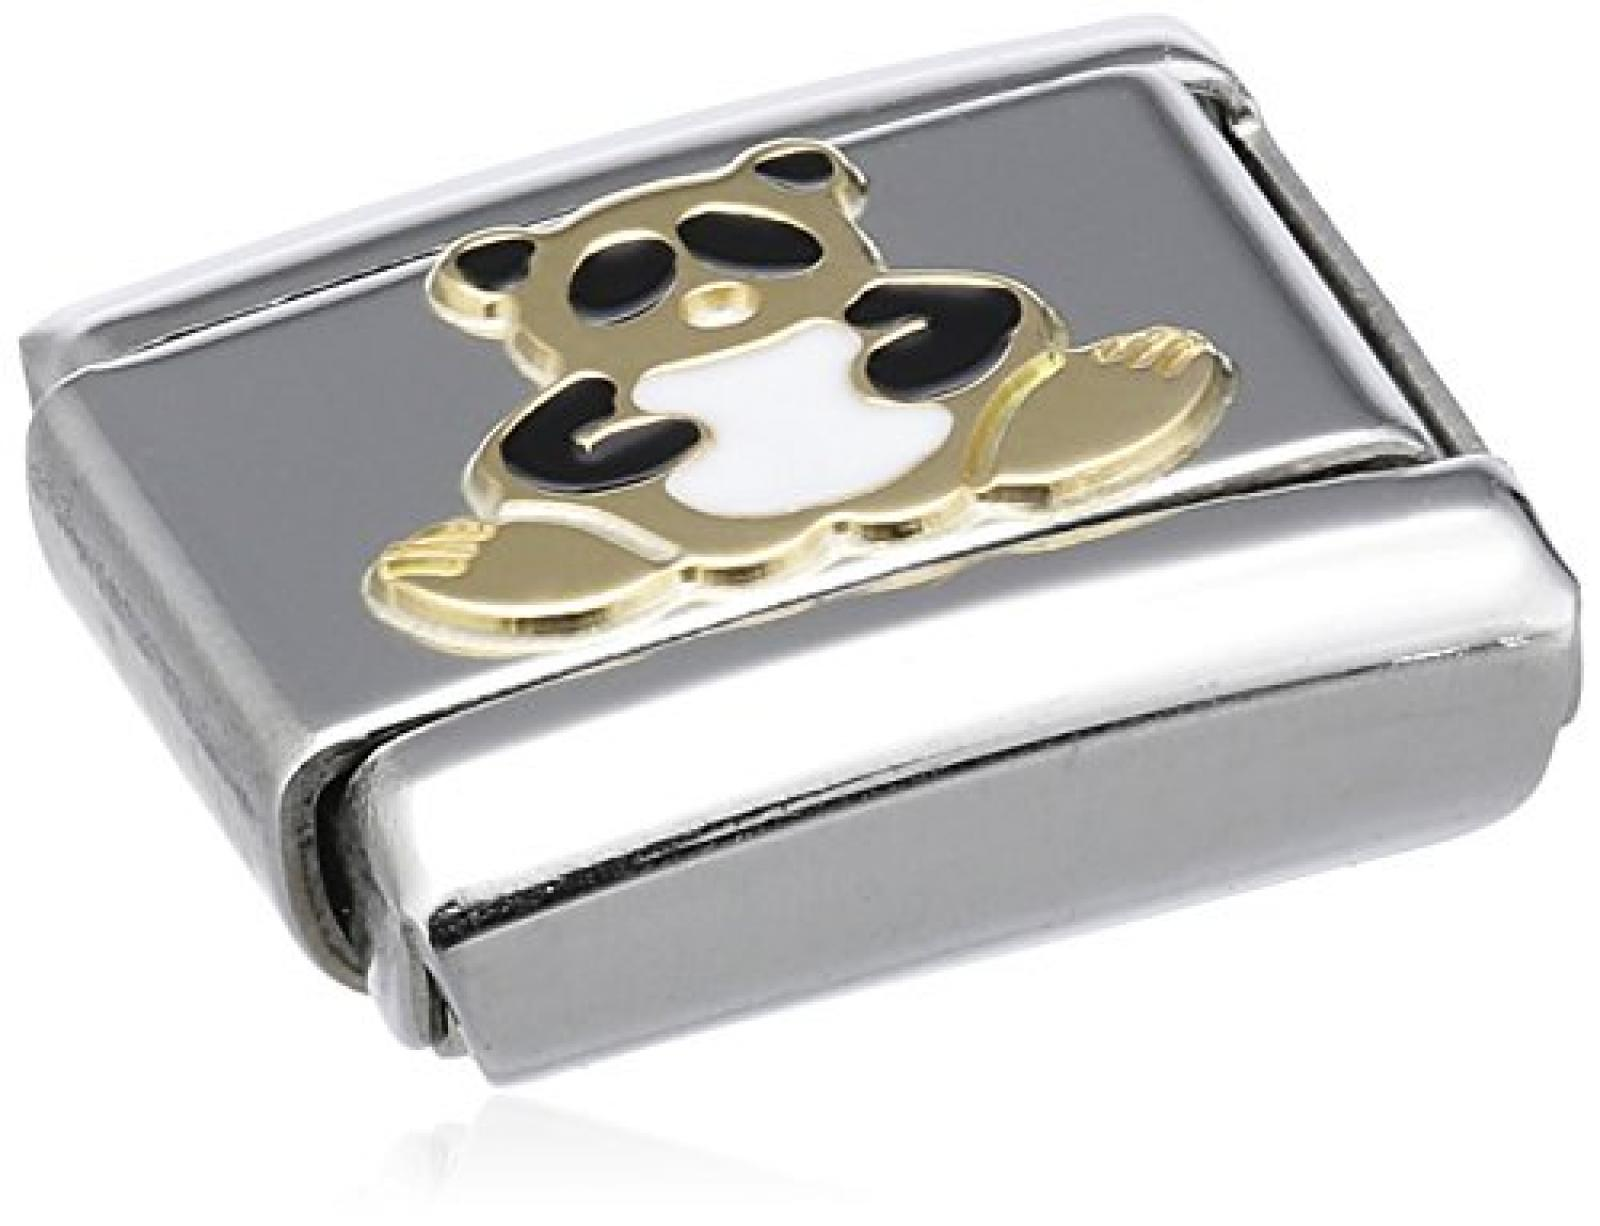 Nomination Composable Classic TIERE - LAND Edelstahl, Email und 18K-Gold (Panda) 030212